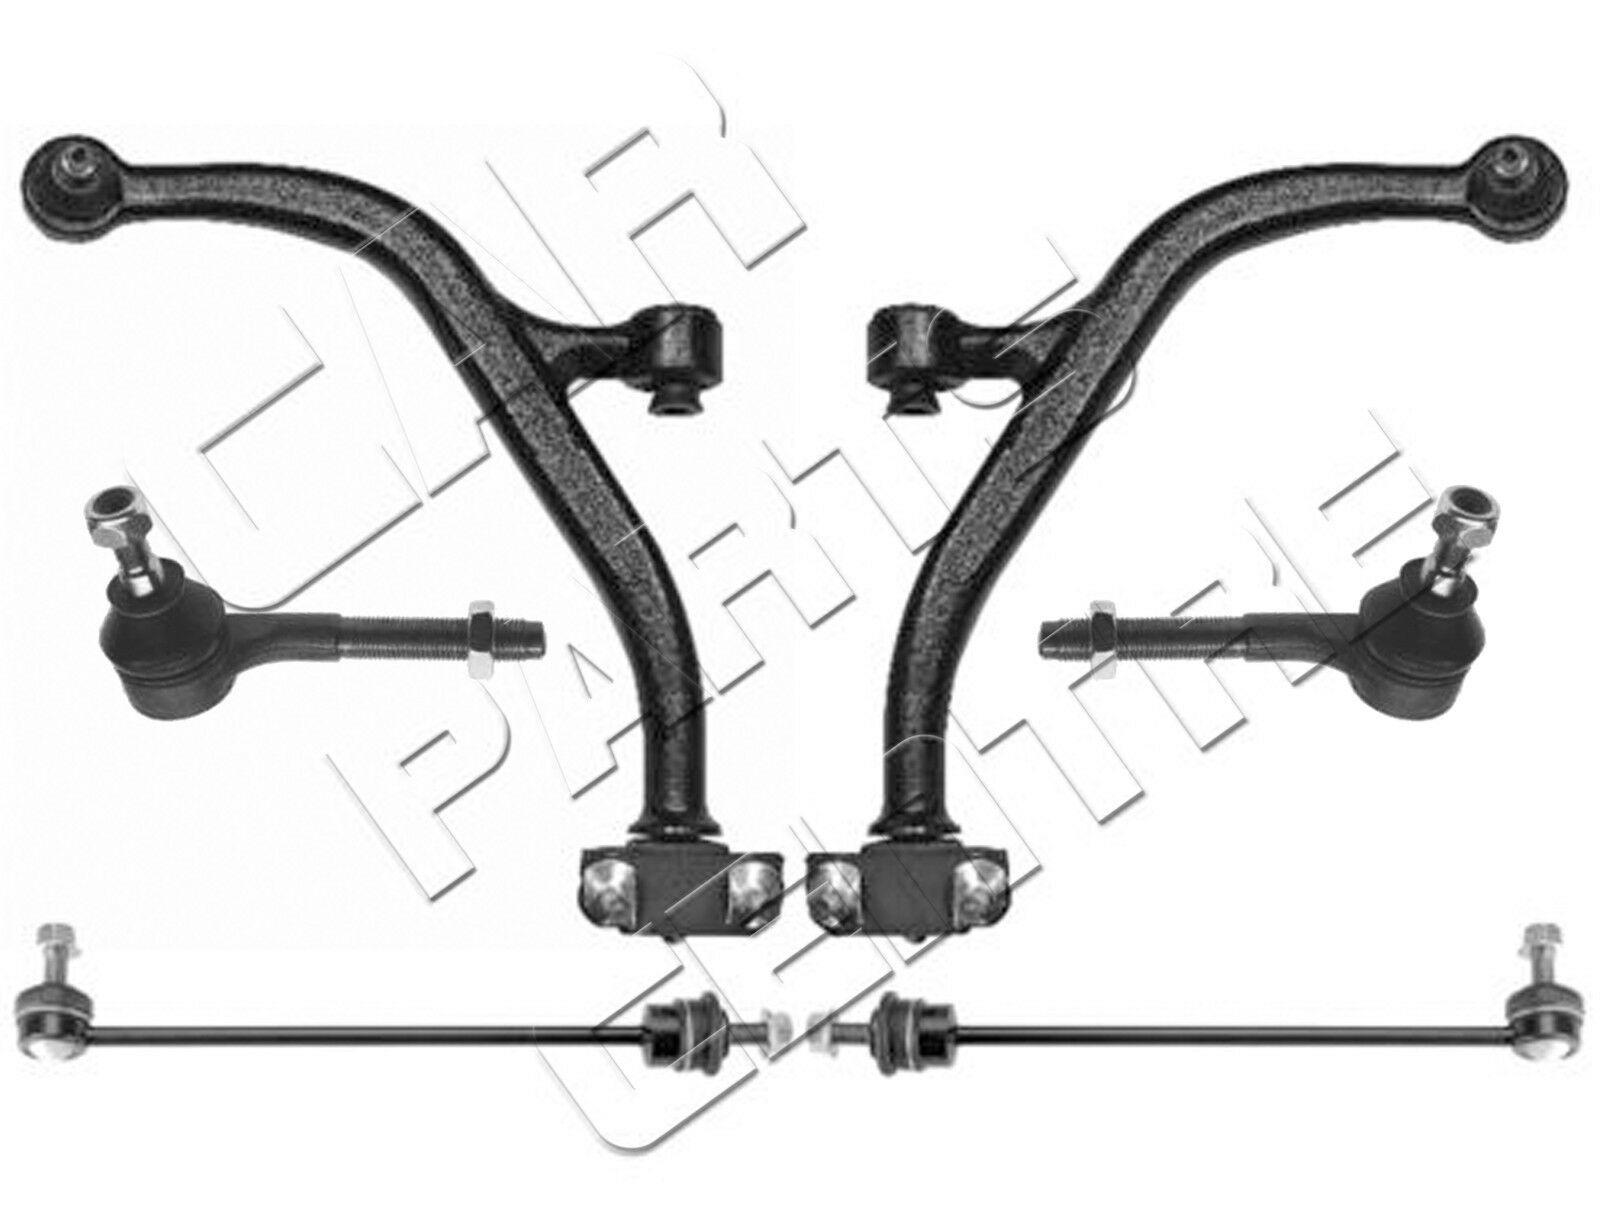 Droit 95 To 01 NEUF Wishbone//Suspension Arm fits BMW 728 E38 2.8 Front Upper